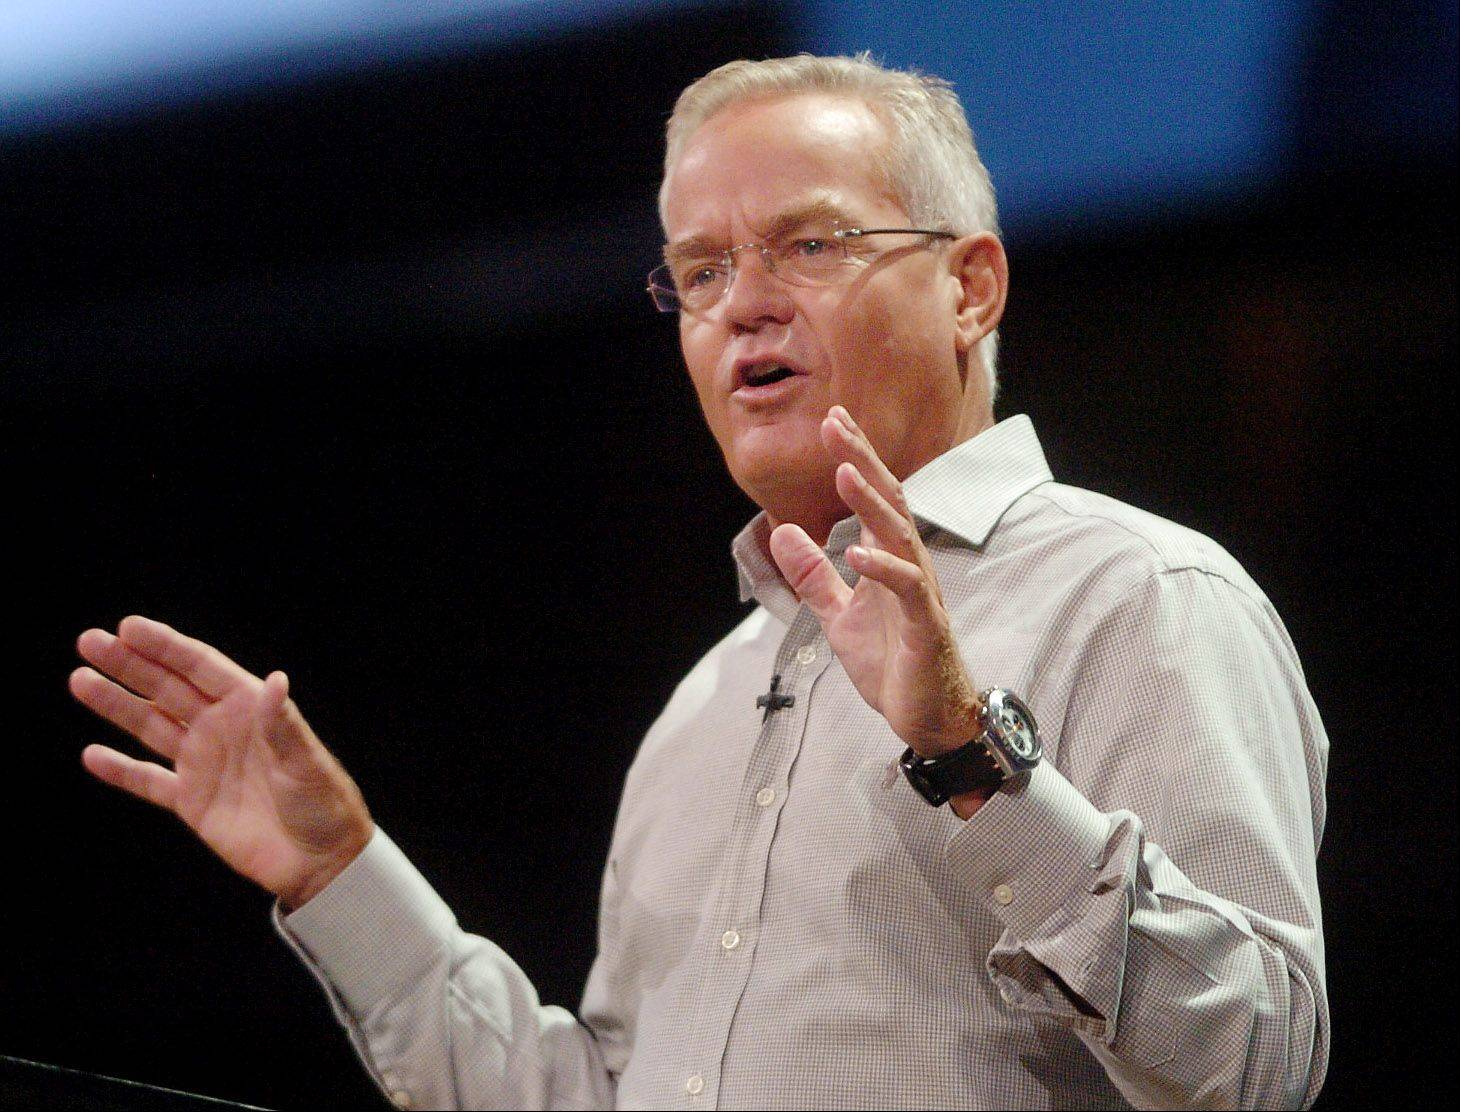 Bill Hybels, founder and senior pastor of Willow Creek, speaks to the Global Leadership Summit on the church's position on gays following Starbucks CEO Howard Schultz's withdrawal from the summit after pressure from a gay group.